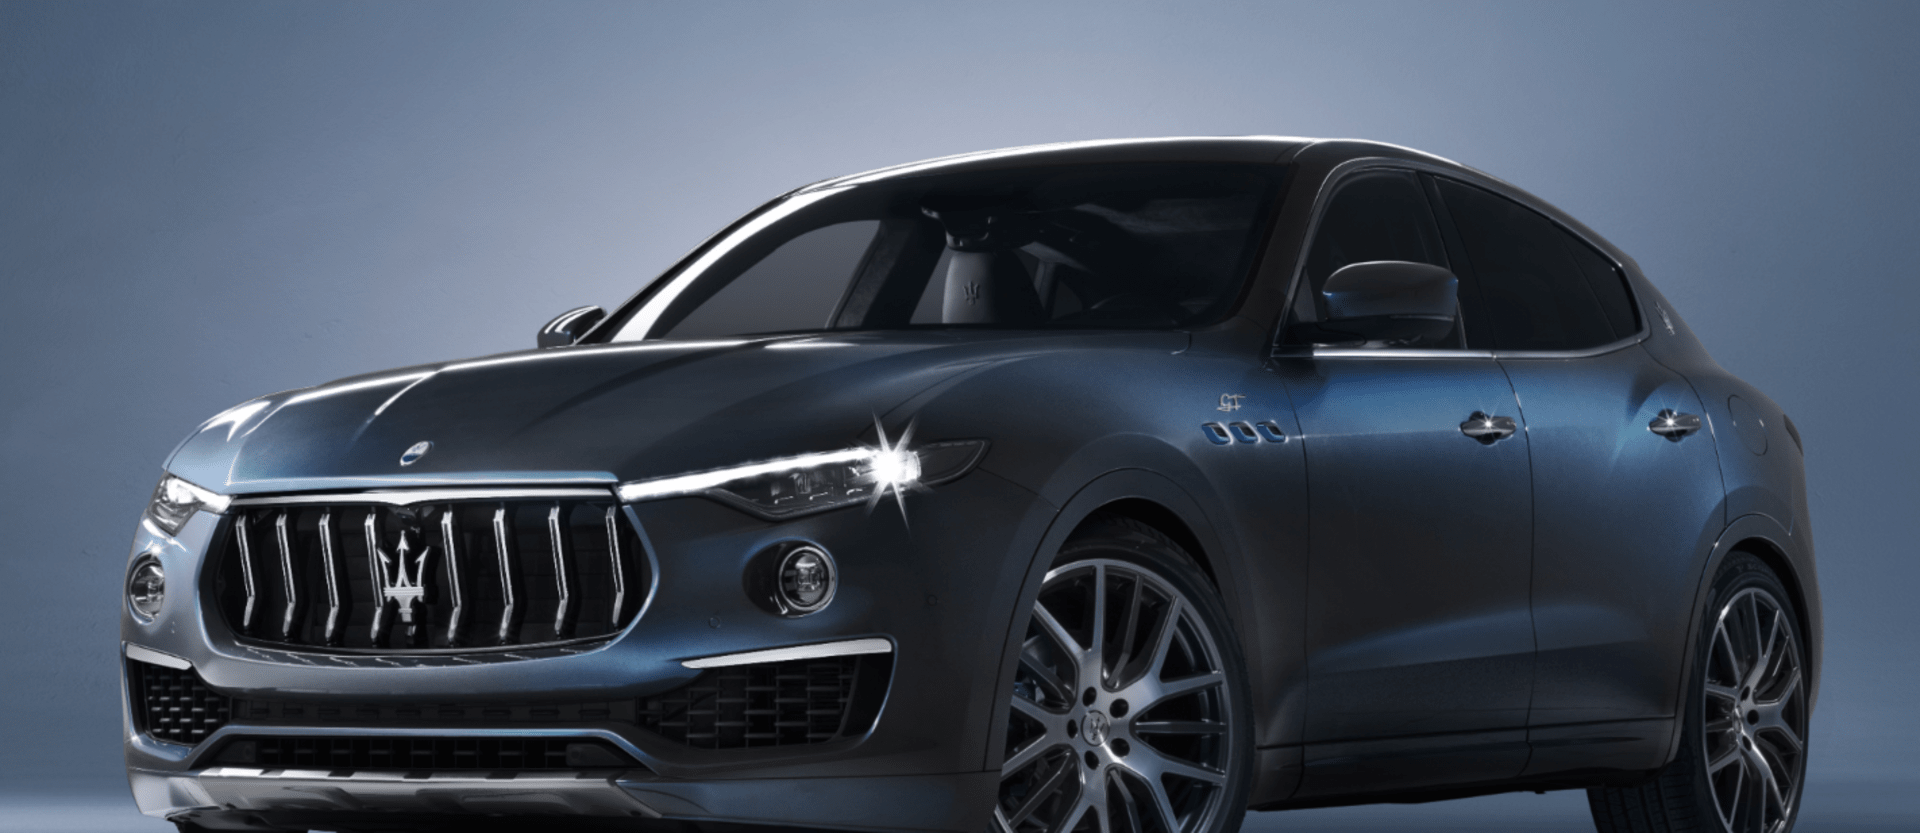 Maserati Levante Hybrid Normal Png